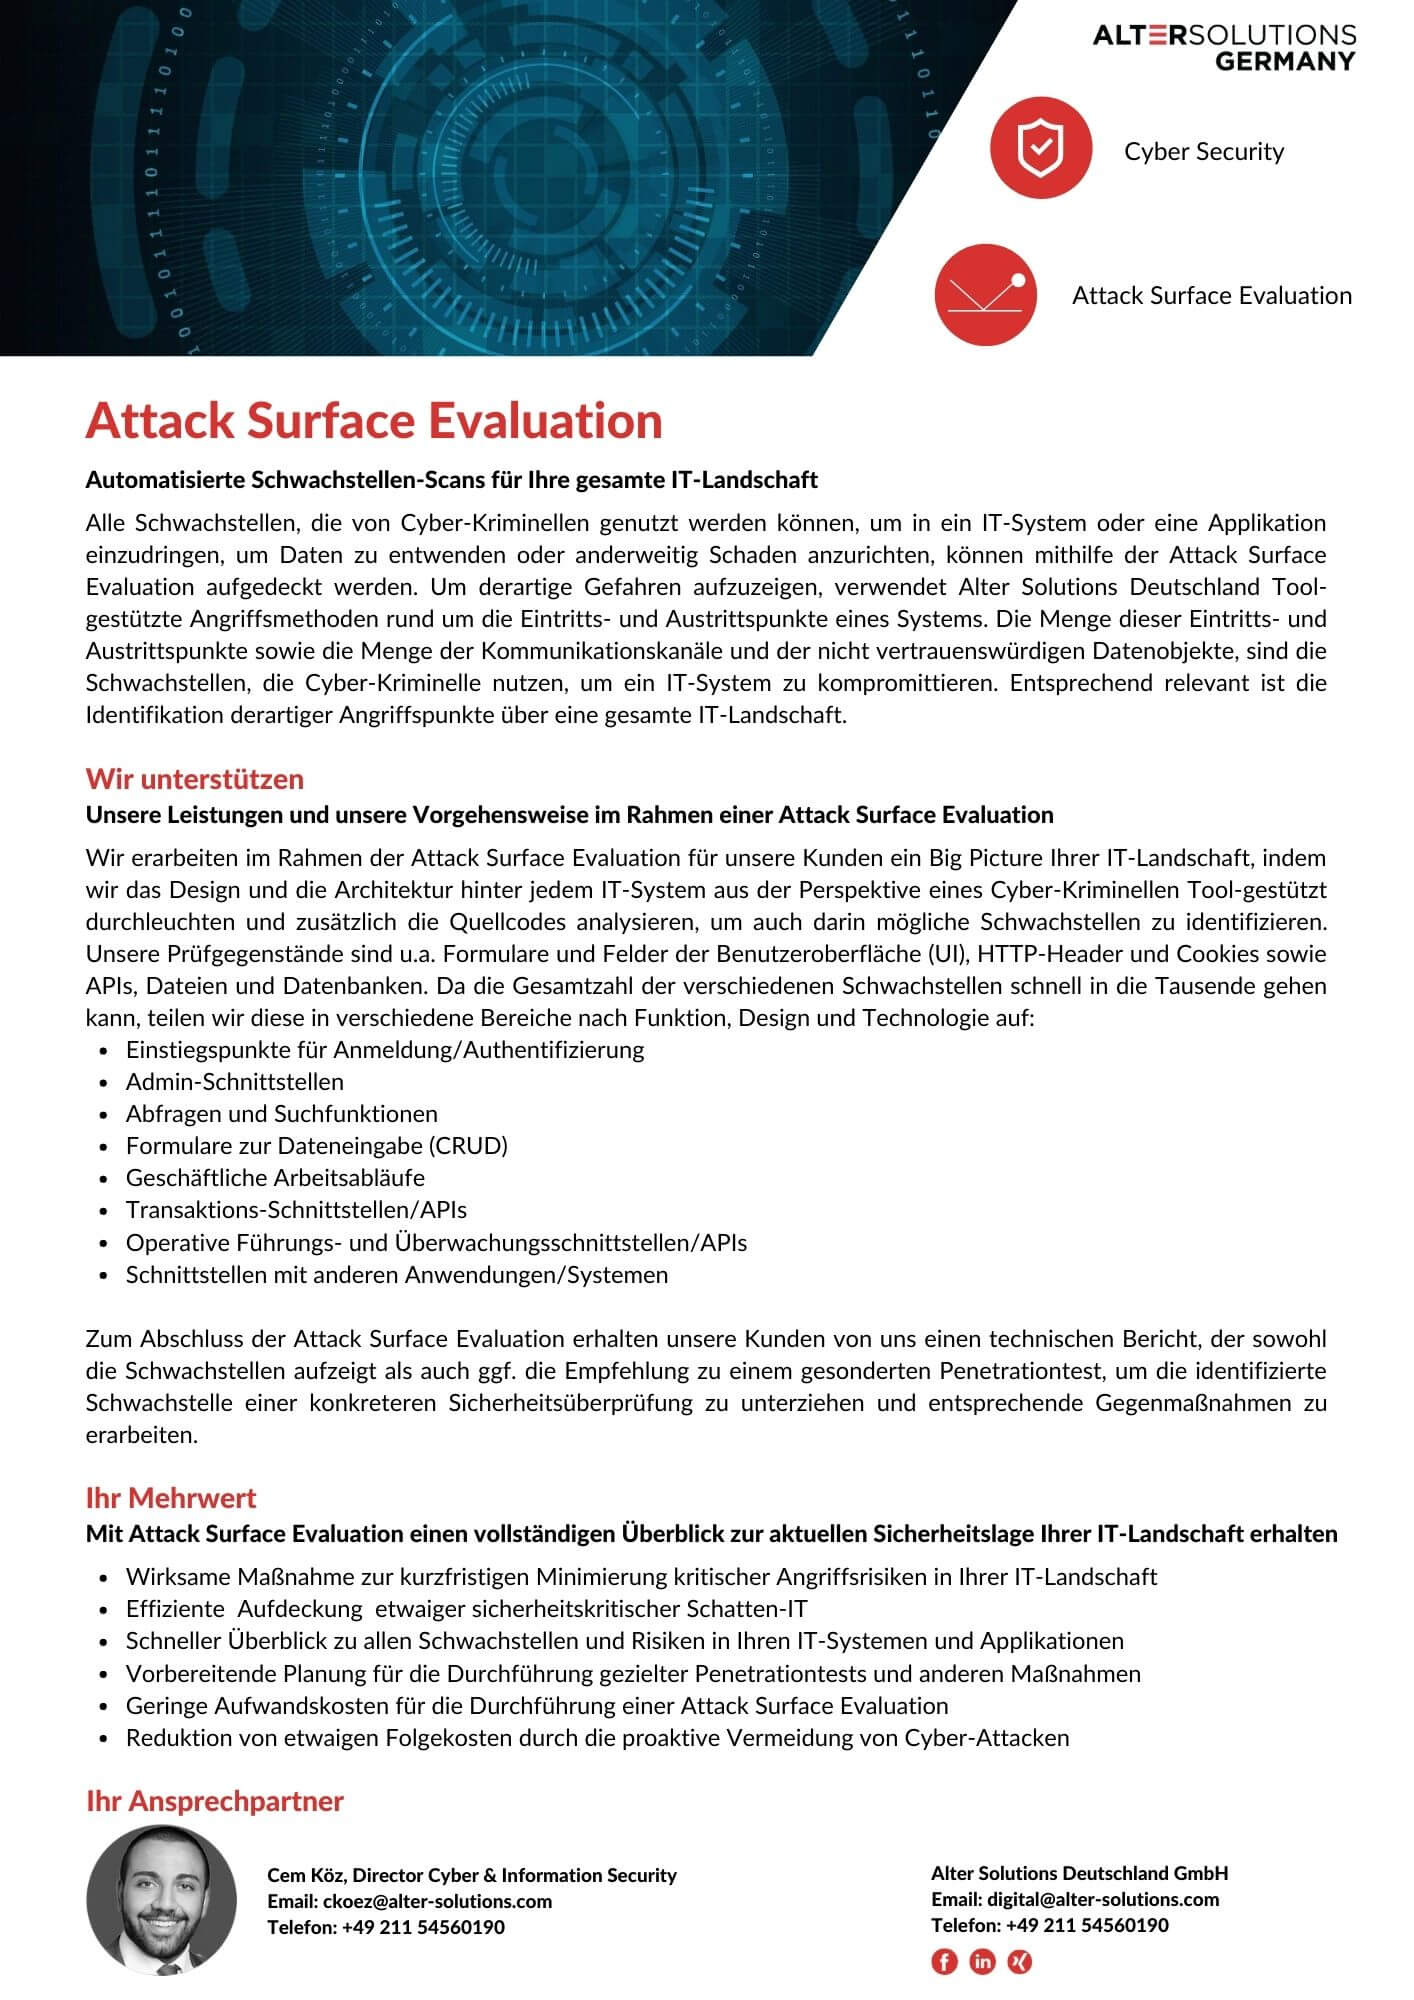 Attack Surface Evaluation Flyer